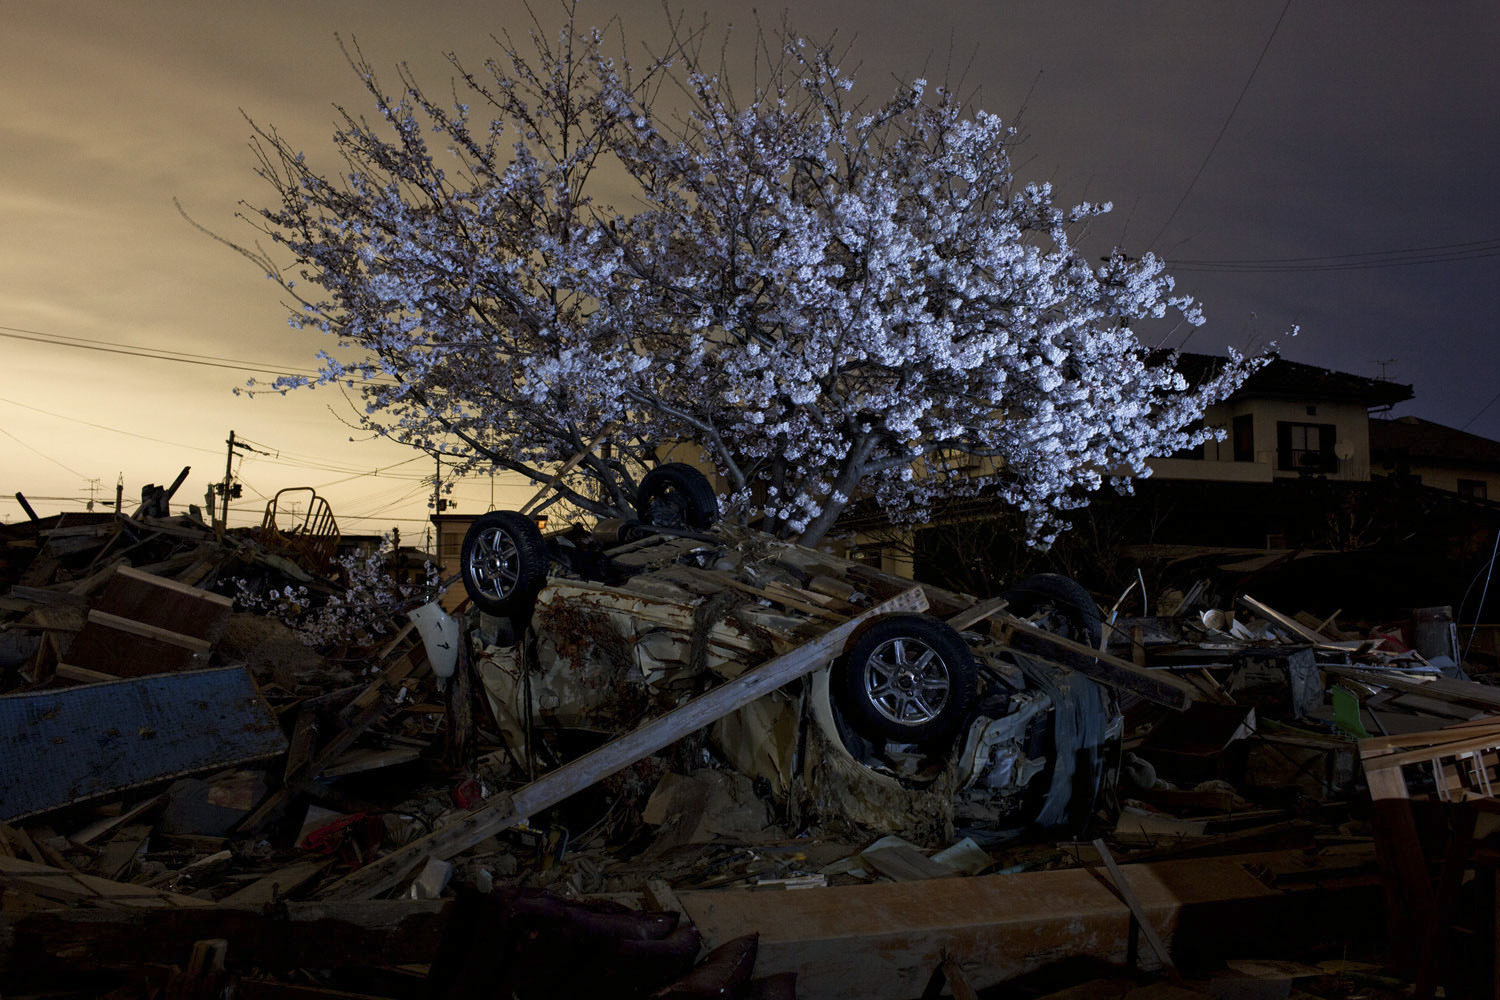 April 18, 2011. Cherry blossoms cover a tree in an area destroyed by the March earthquake and tsunami in Natori, Japan.